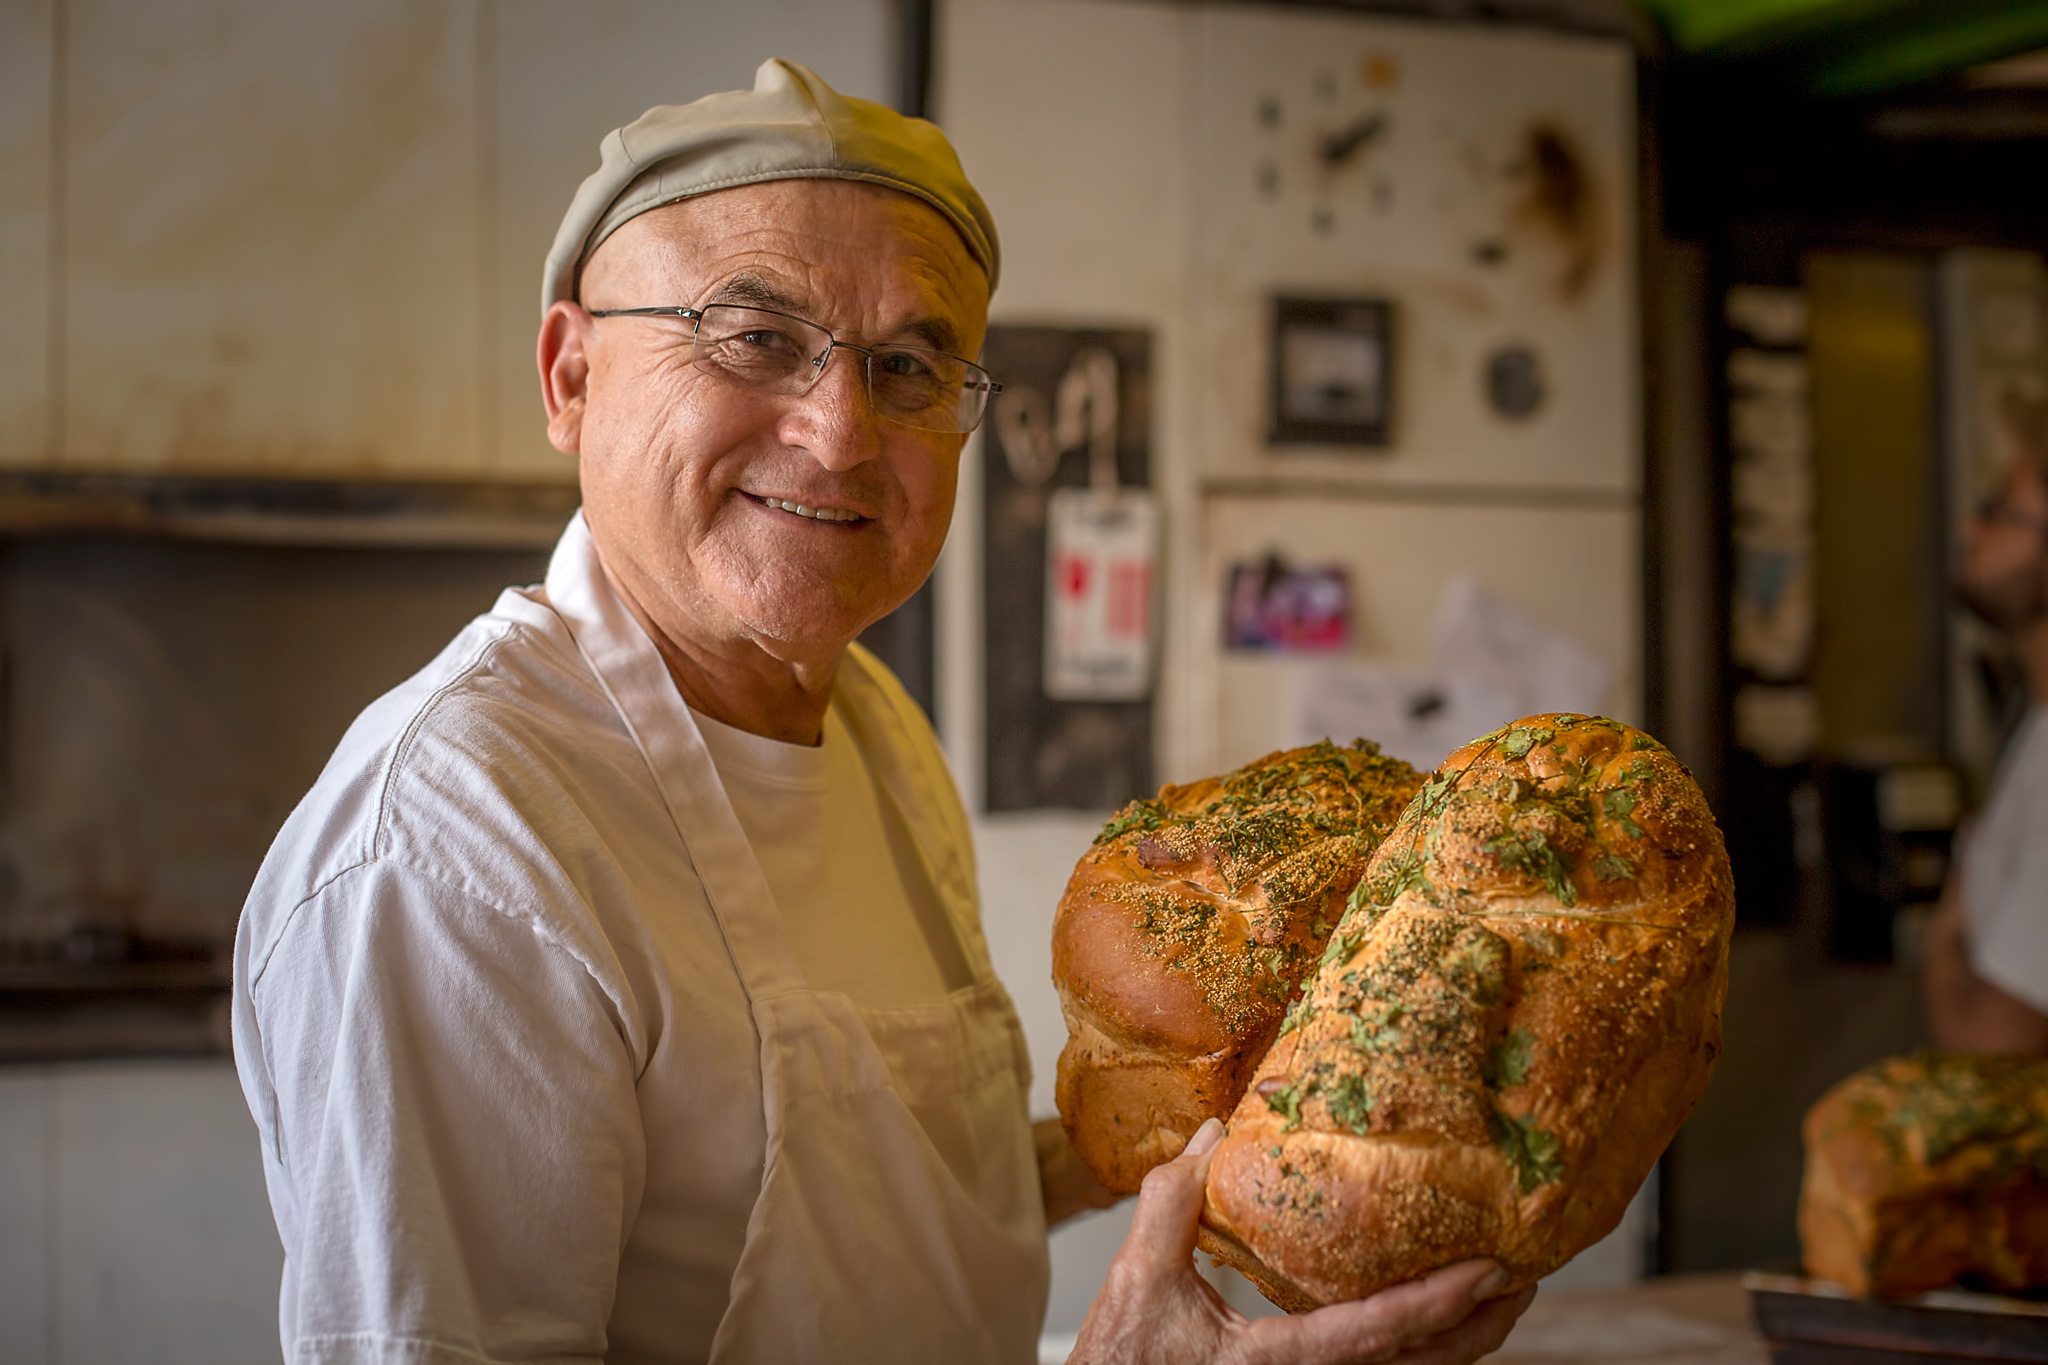 Pratt Morales of the Golden Crown Panaderia makes these beautiful cilantro loaves every day. Delicious!